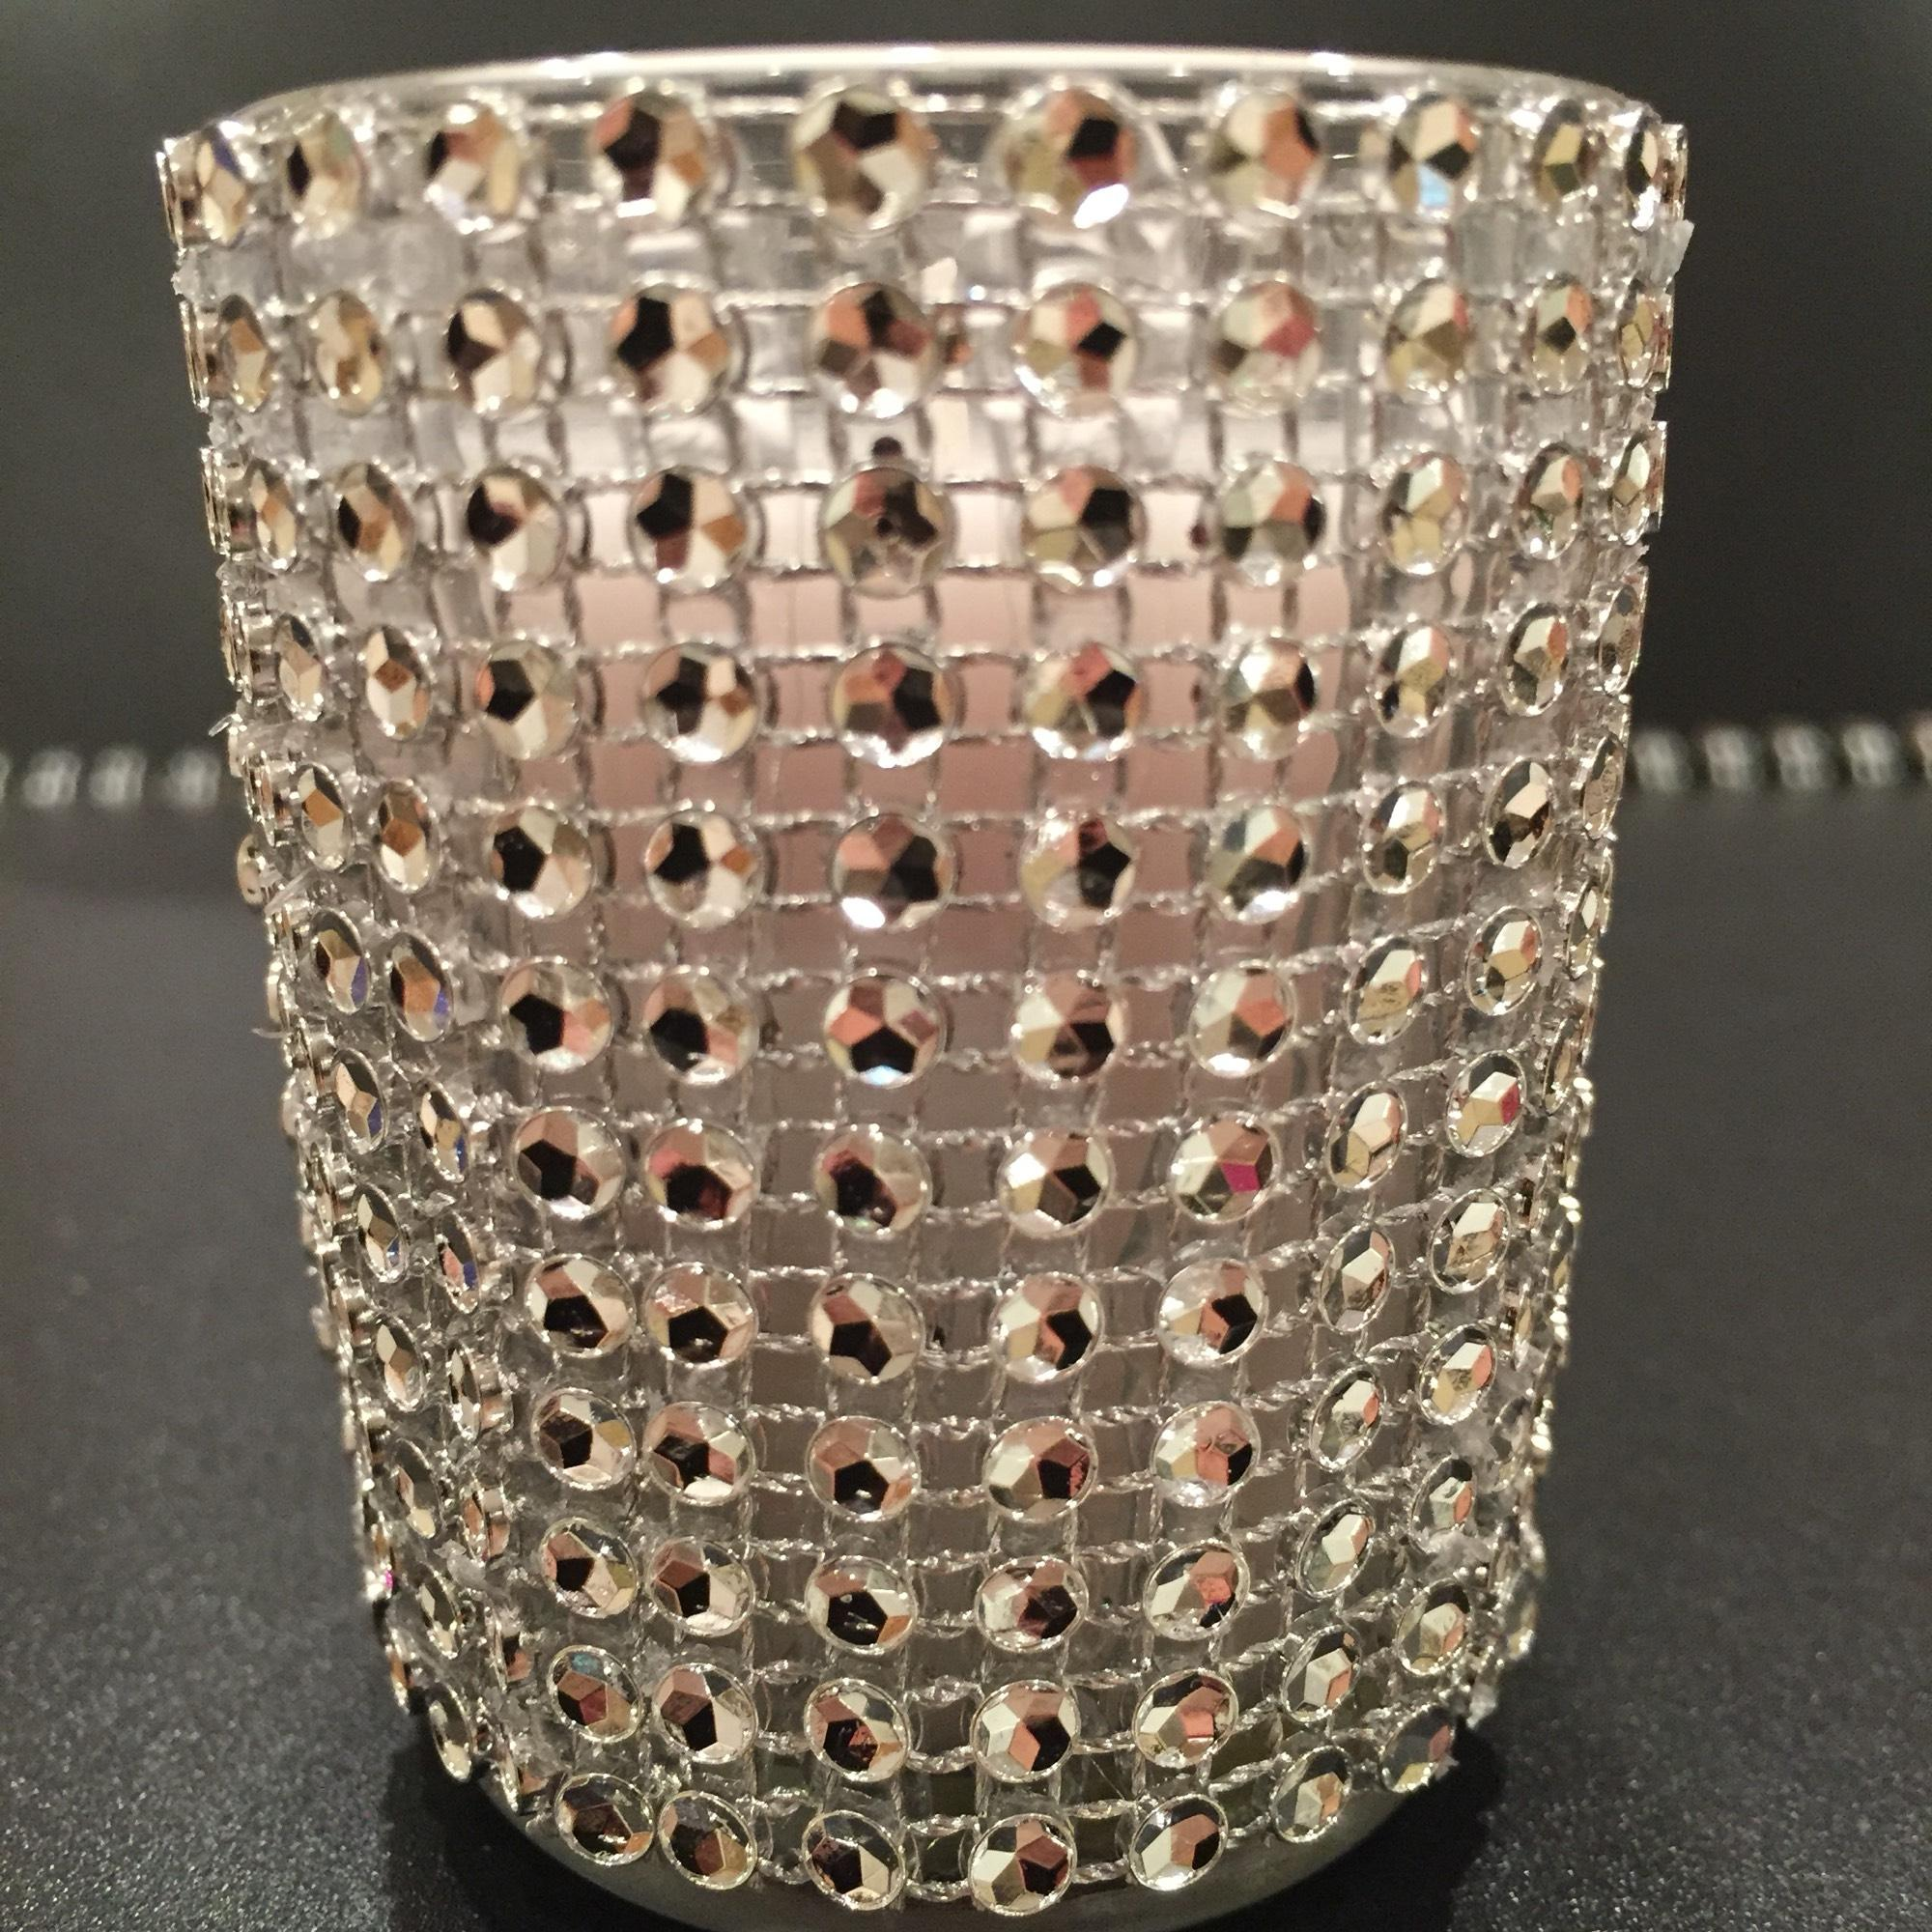 15 Votive Candle Glass Vases Fully Covered Silver Bling Faux Rhinestone Wedding - Shower - Quincenaera - Birthday Party Decoration